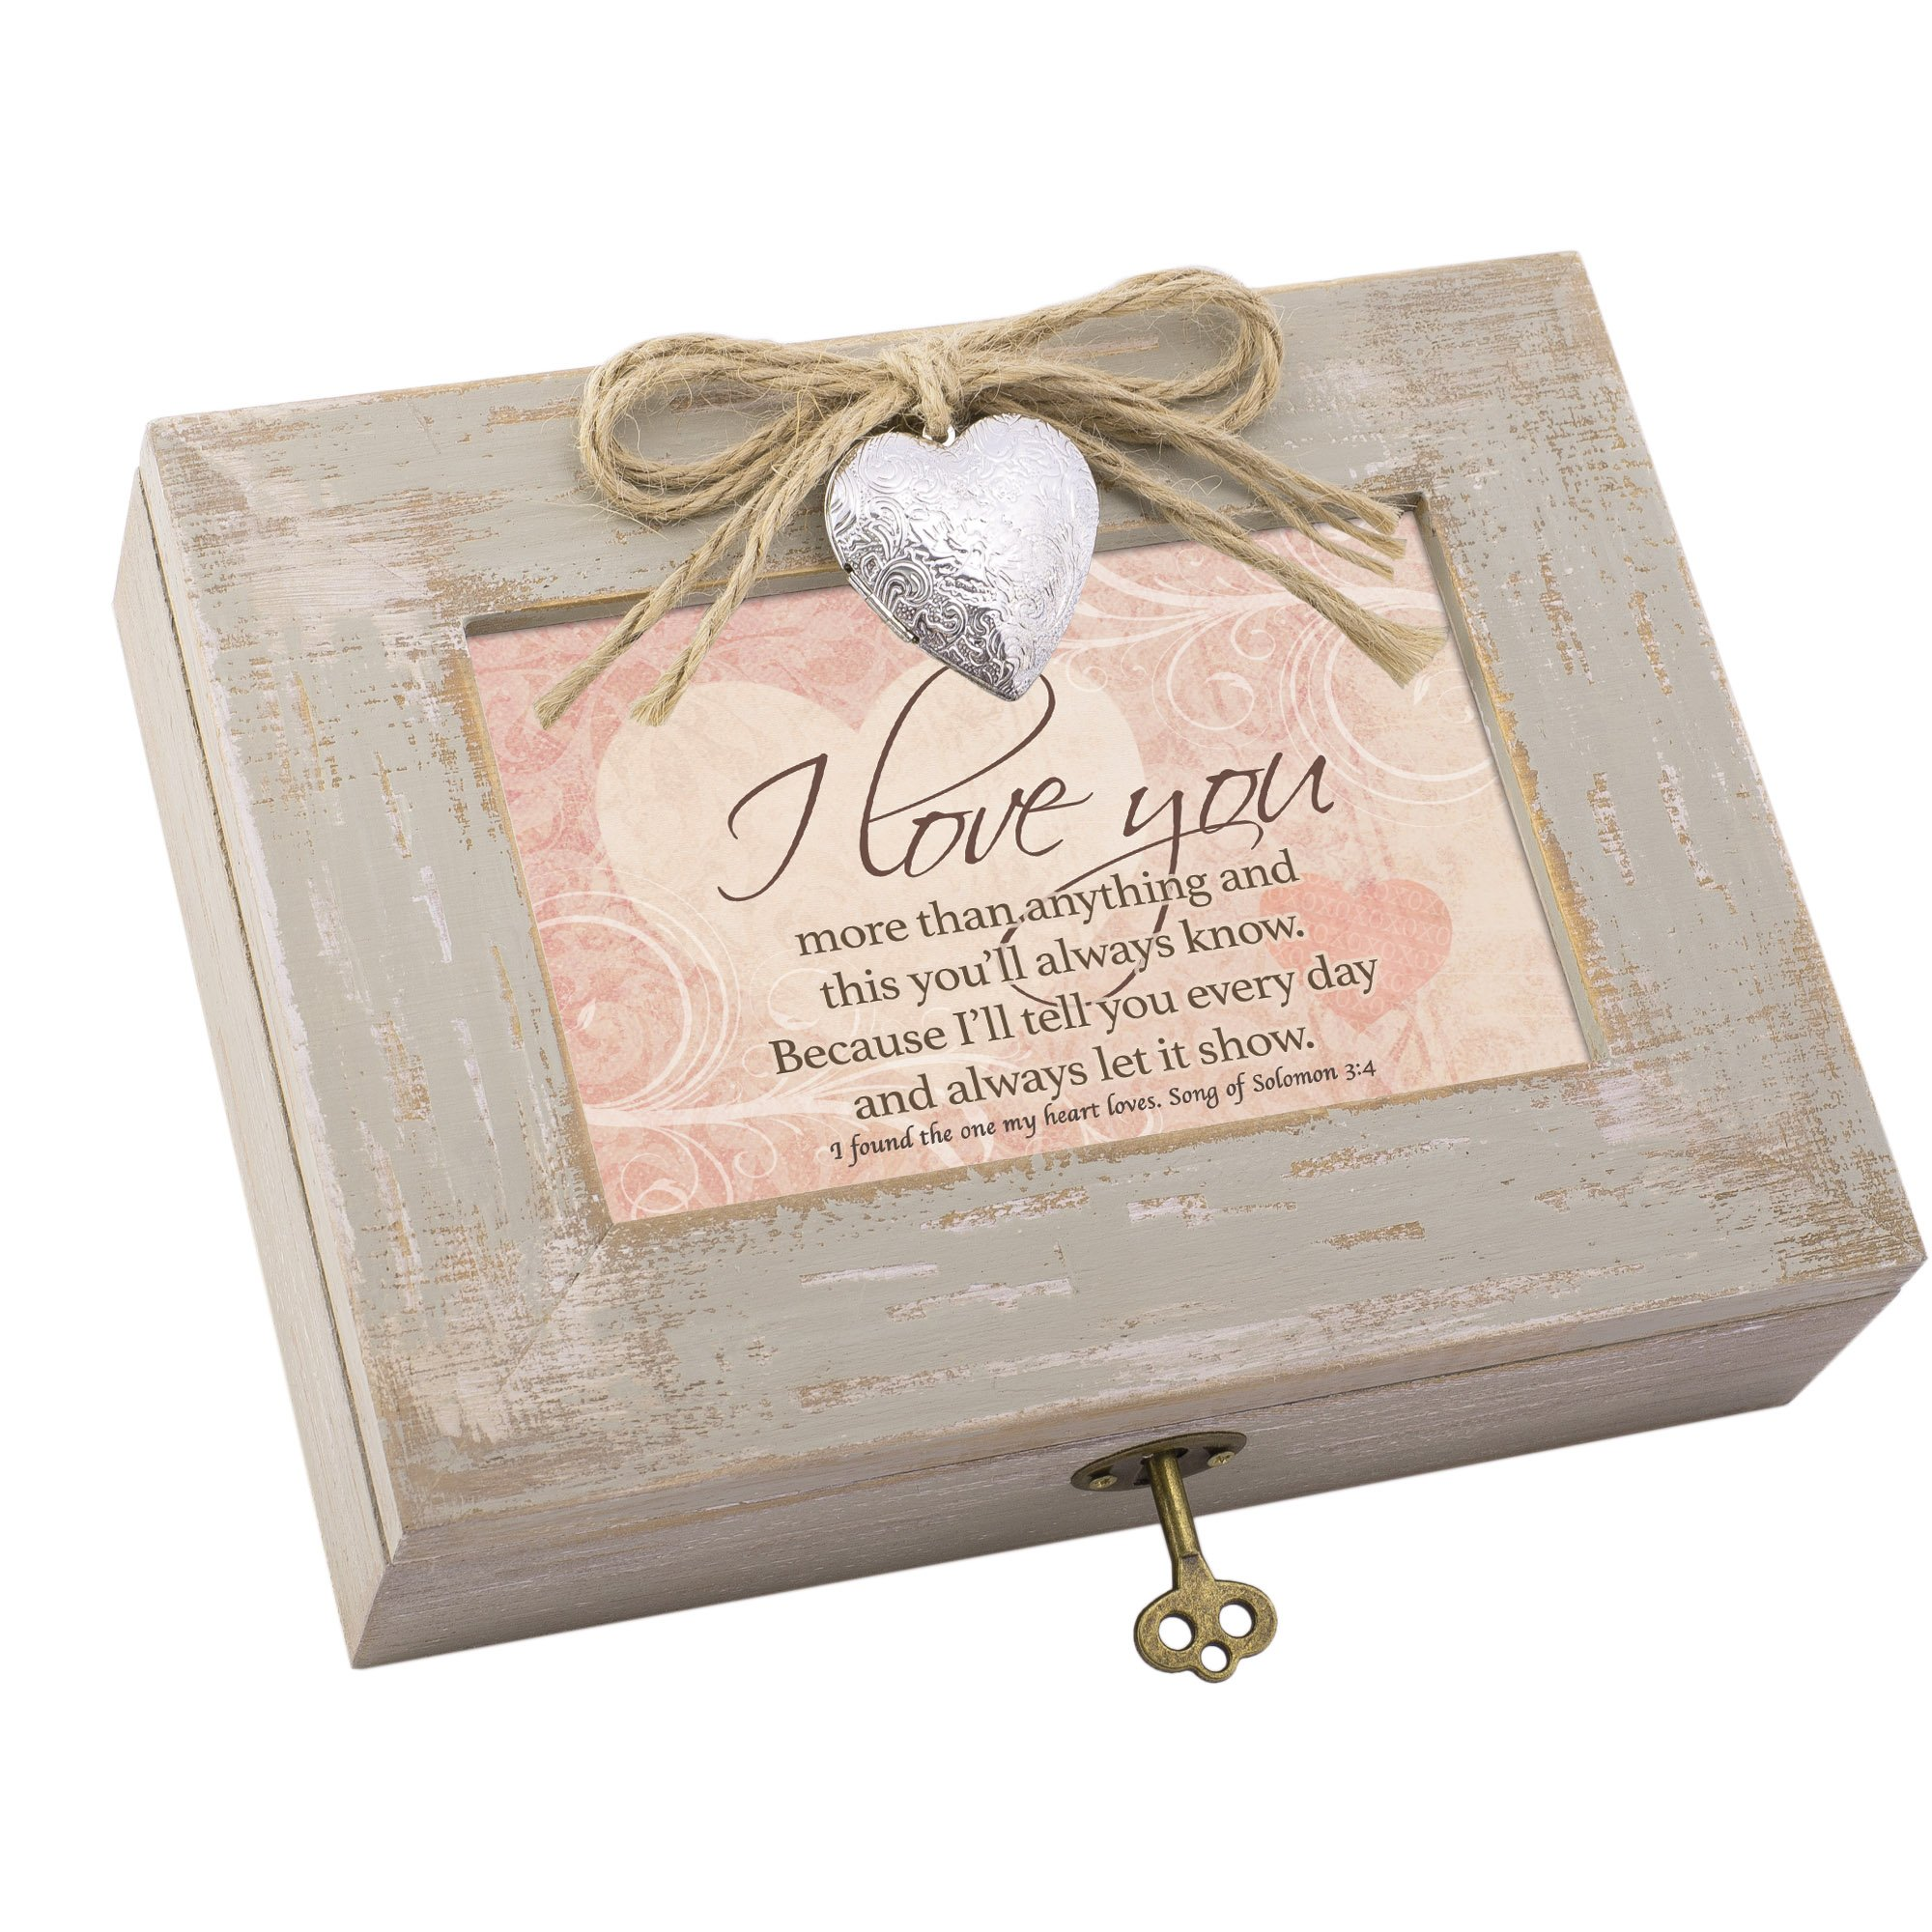 Cottage Garden I Love You More Natural Taupe Wood Locket Box Music Box Plays How Great Thou Art by Cottage Garden (Image #1)